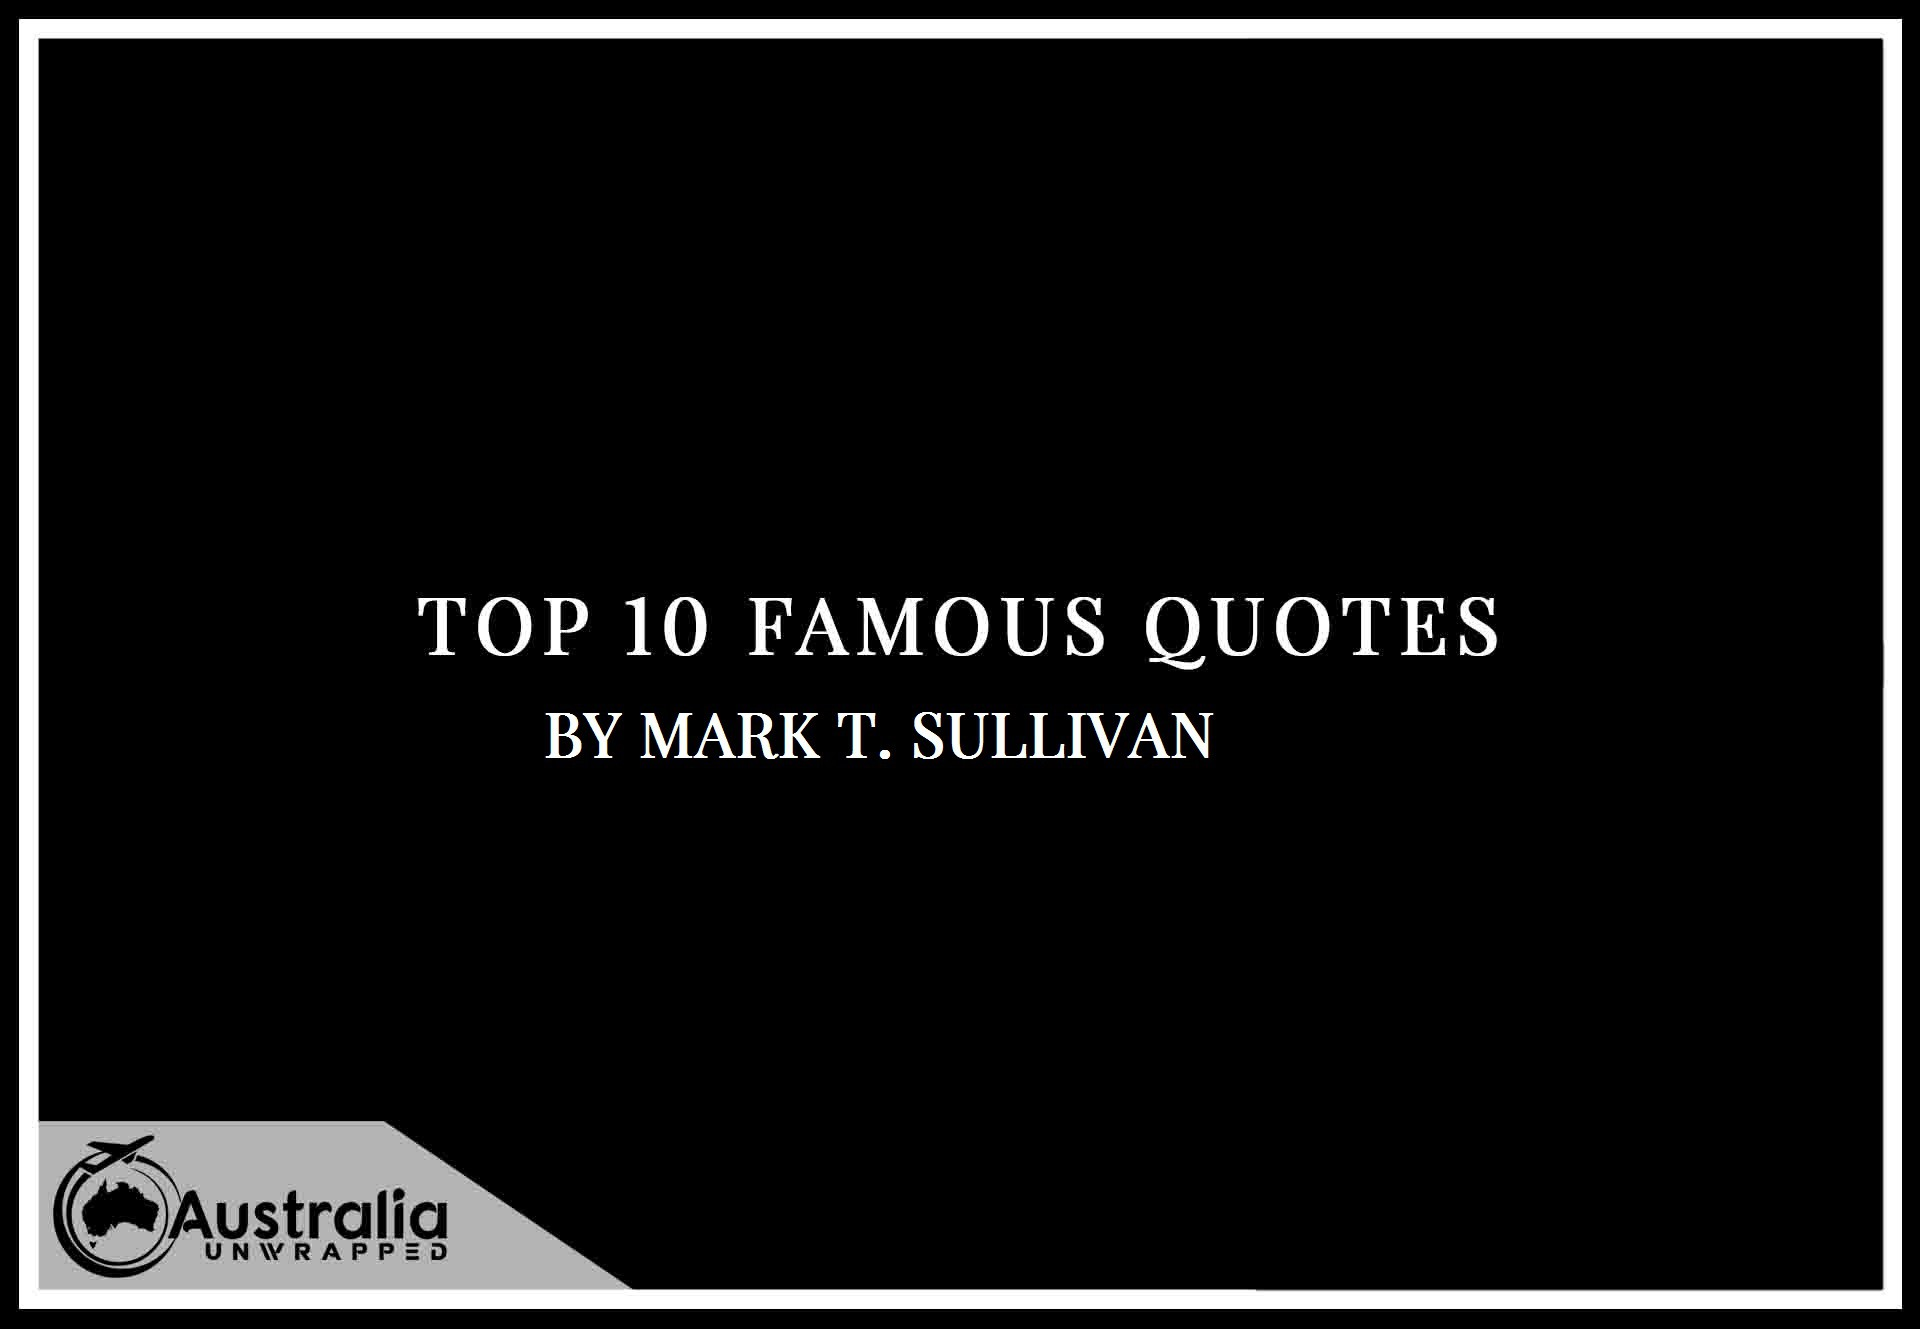 Mark T. Sullivan's Top 10 Popular and Famous Quotes